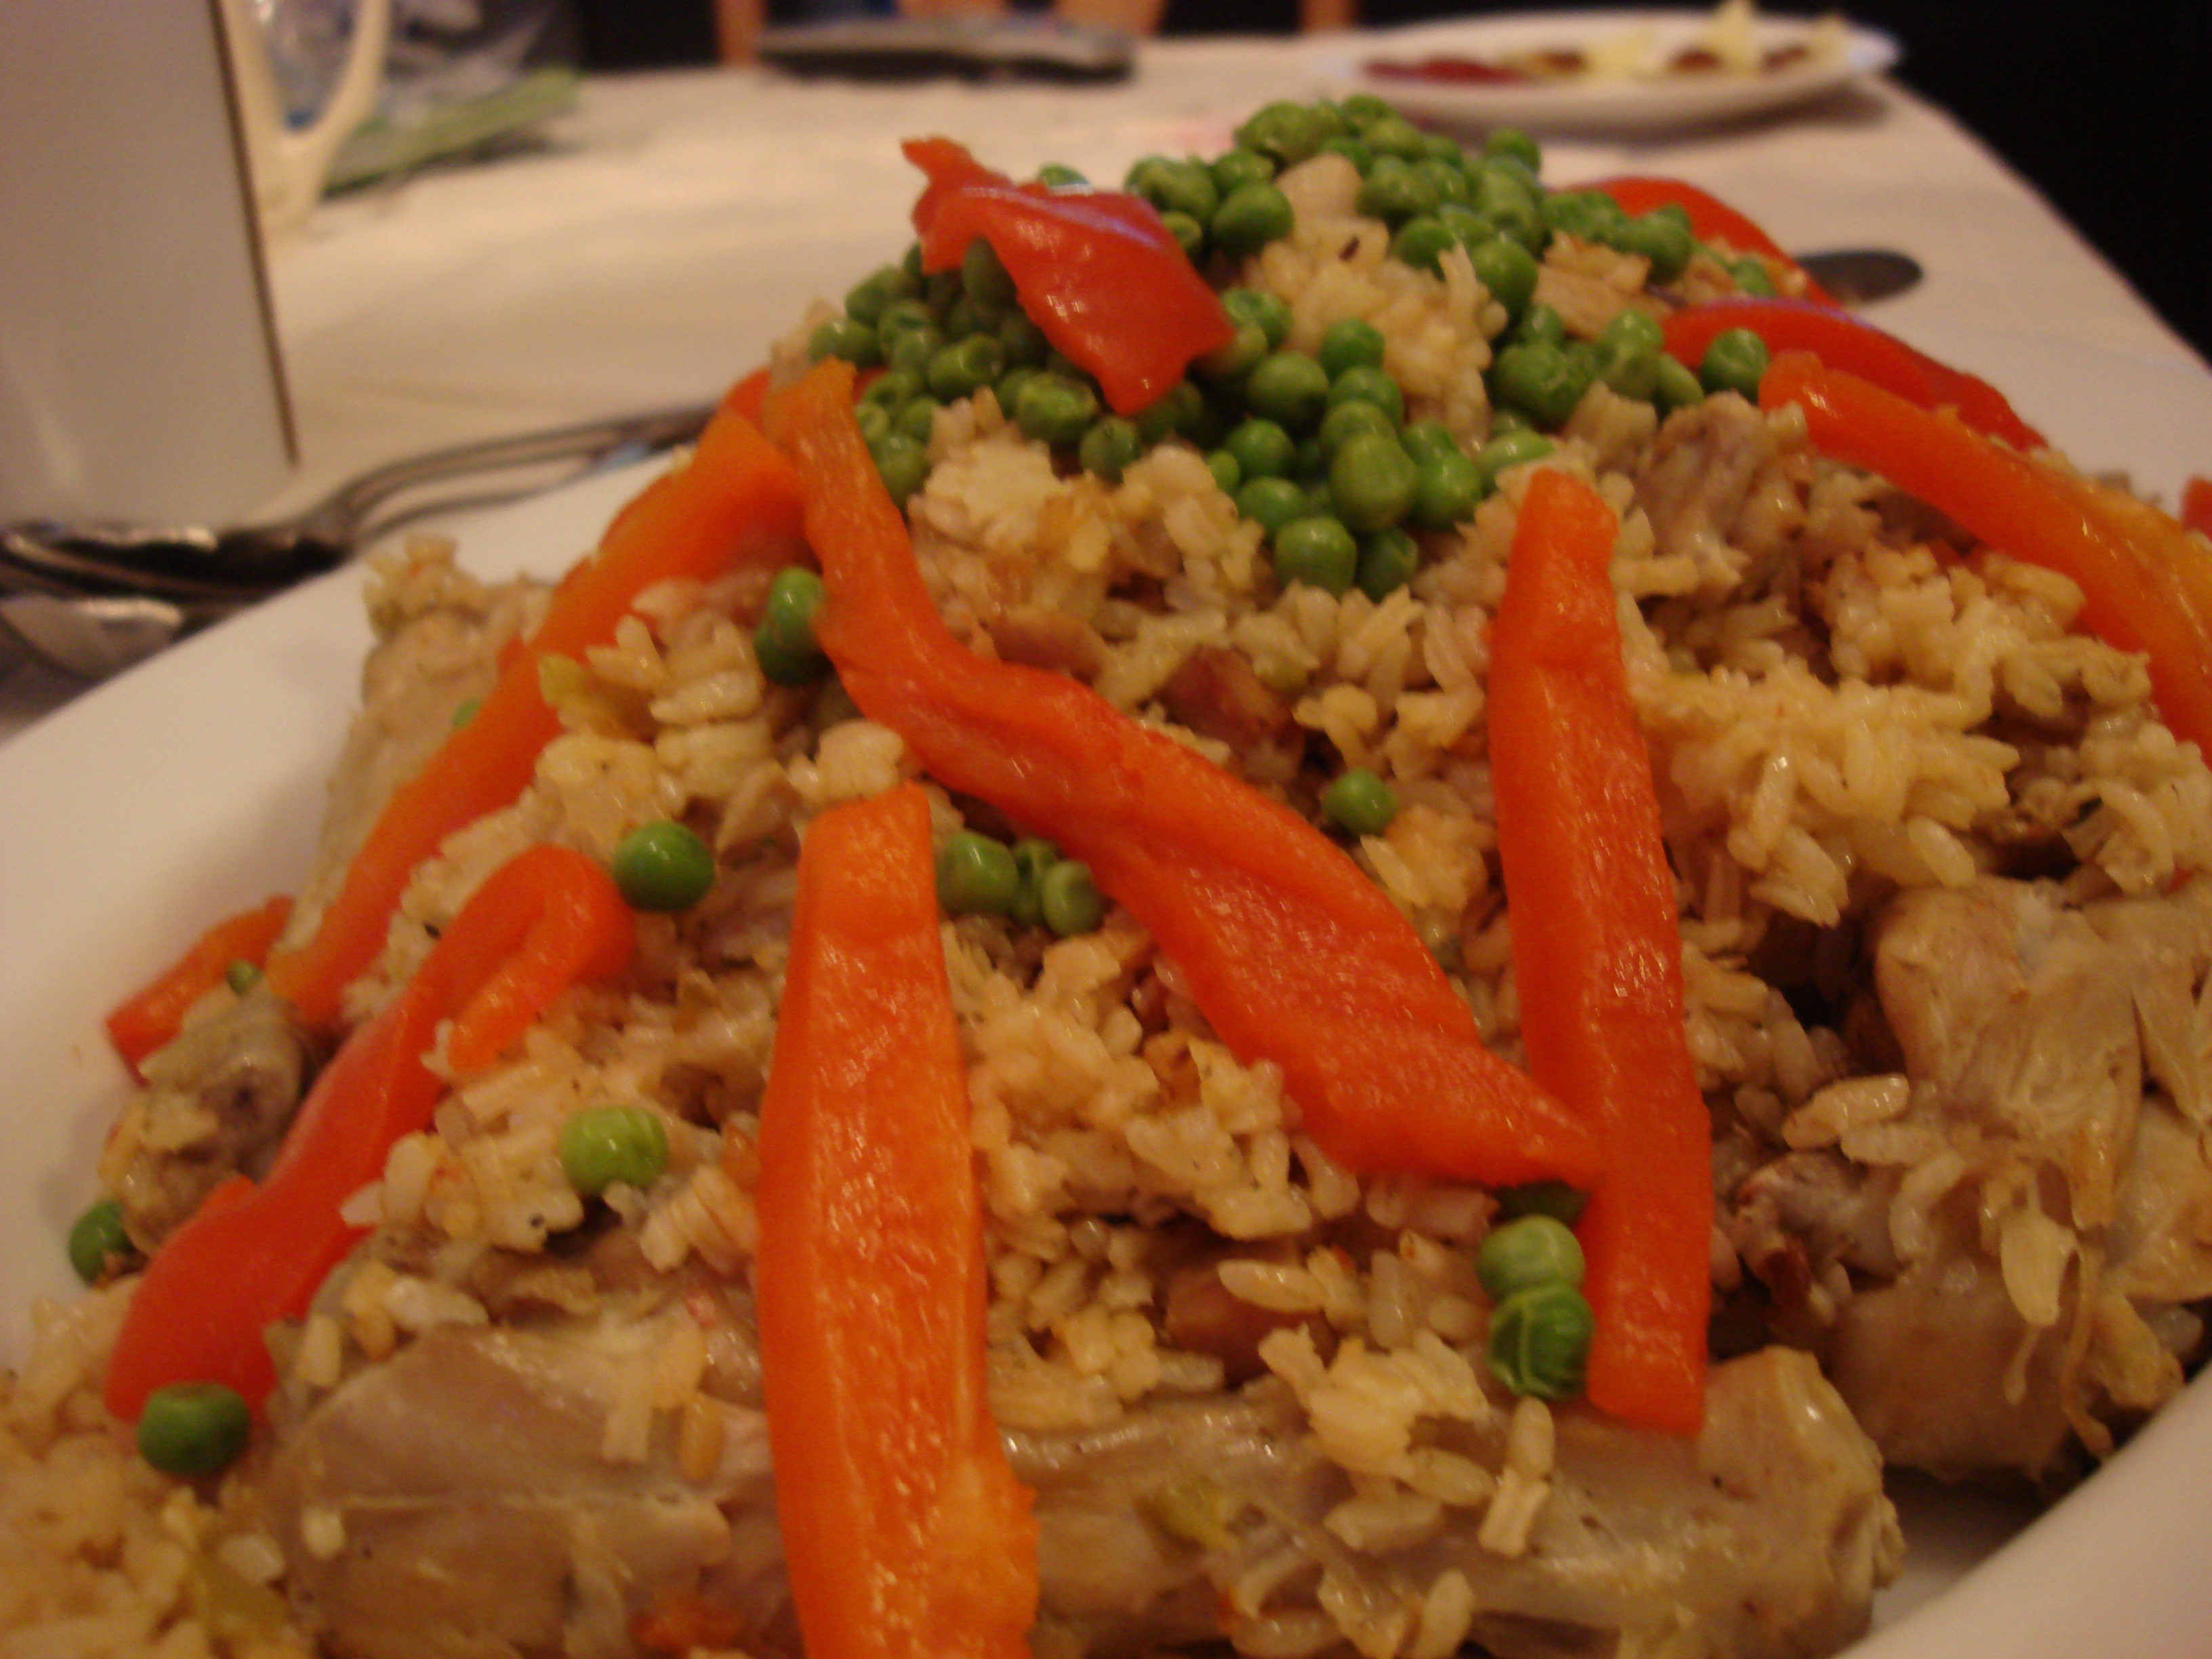 Arroz Con Pollo Clásico Puerto Rican Chicken And Rice Traditional And Epic Hot Cheap Easy